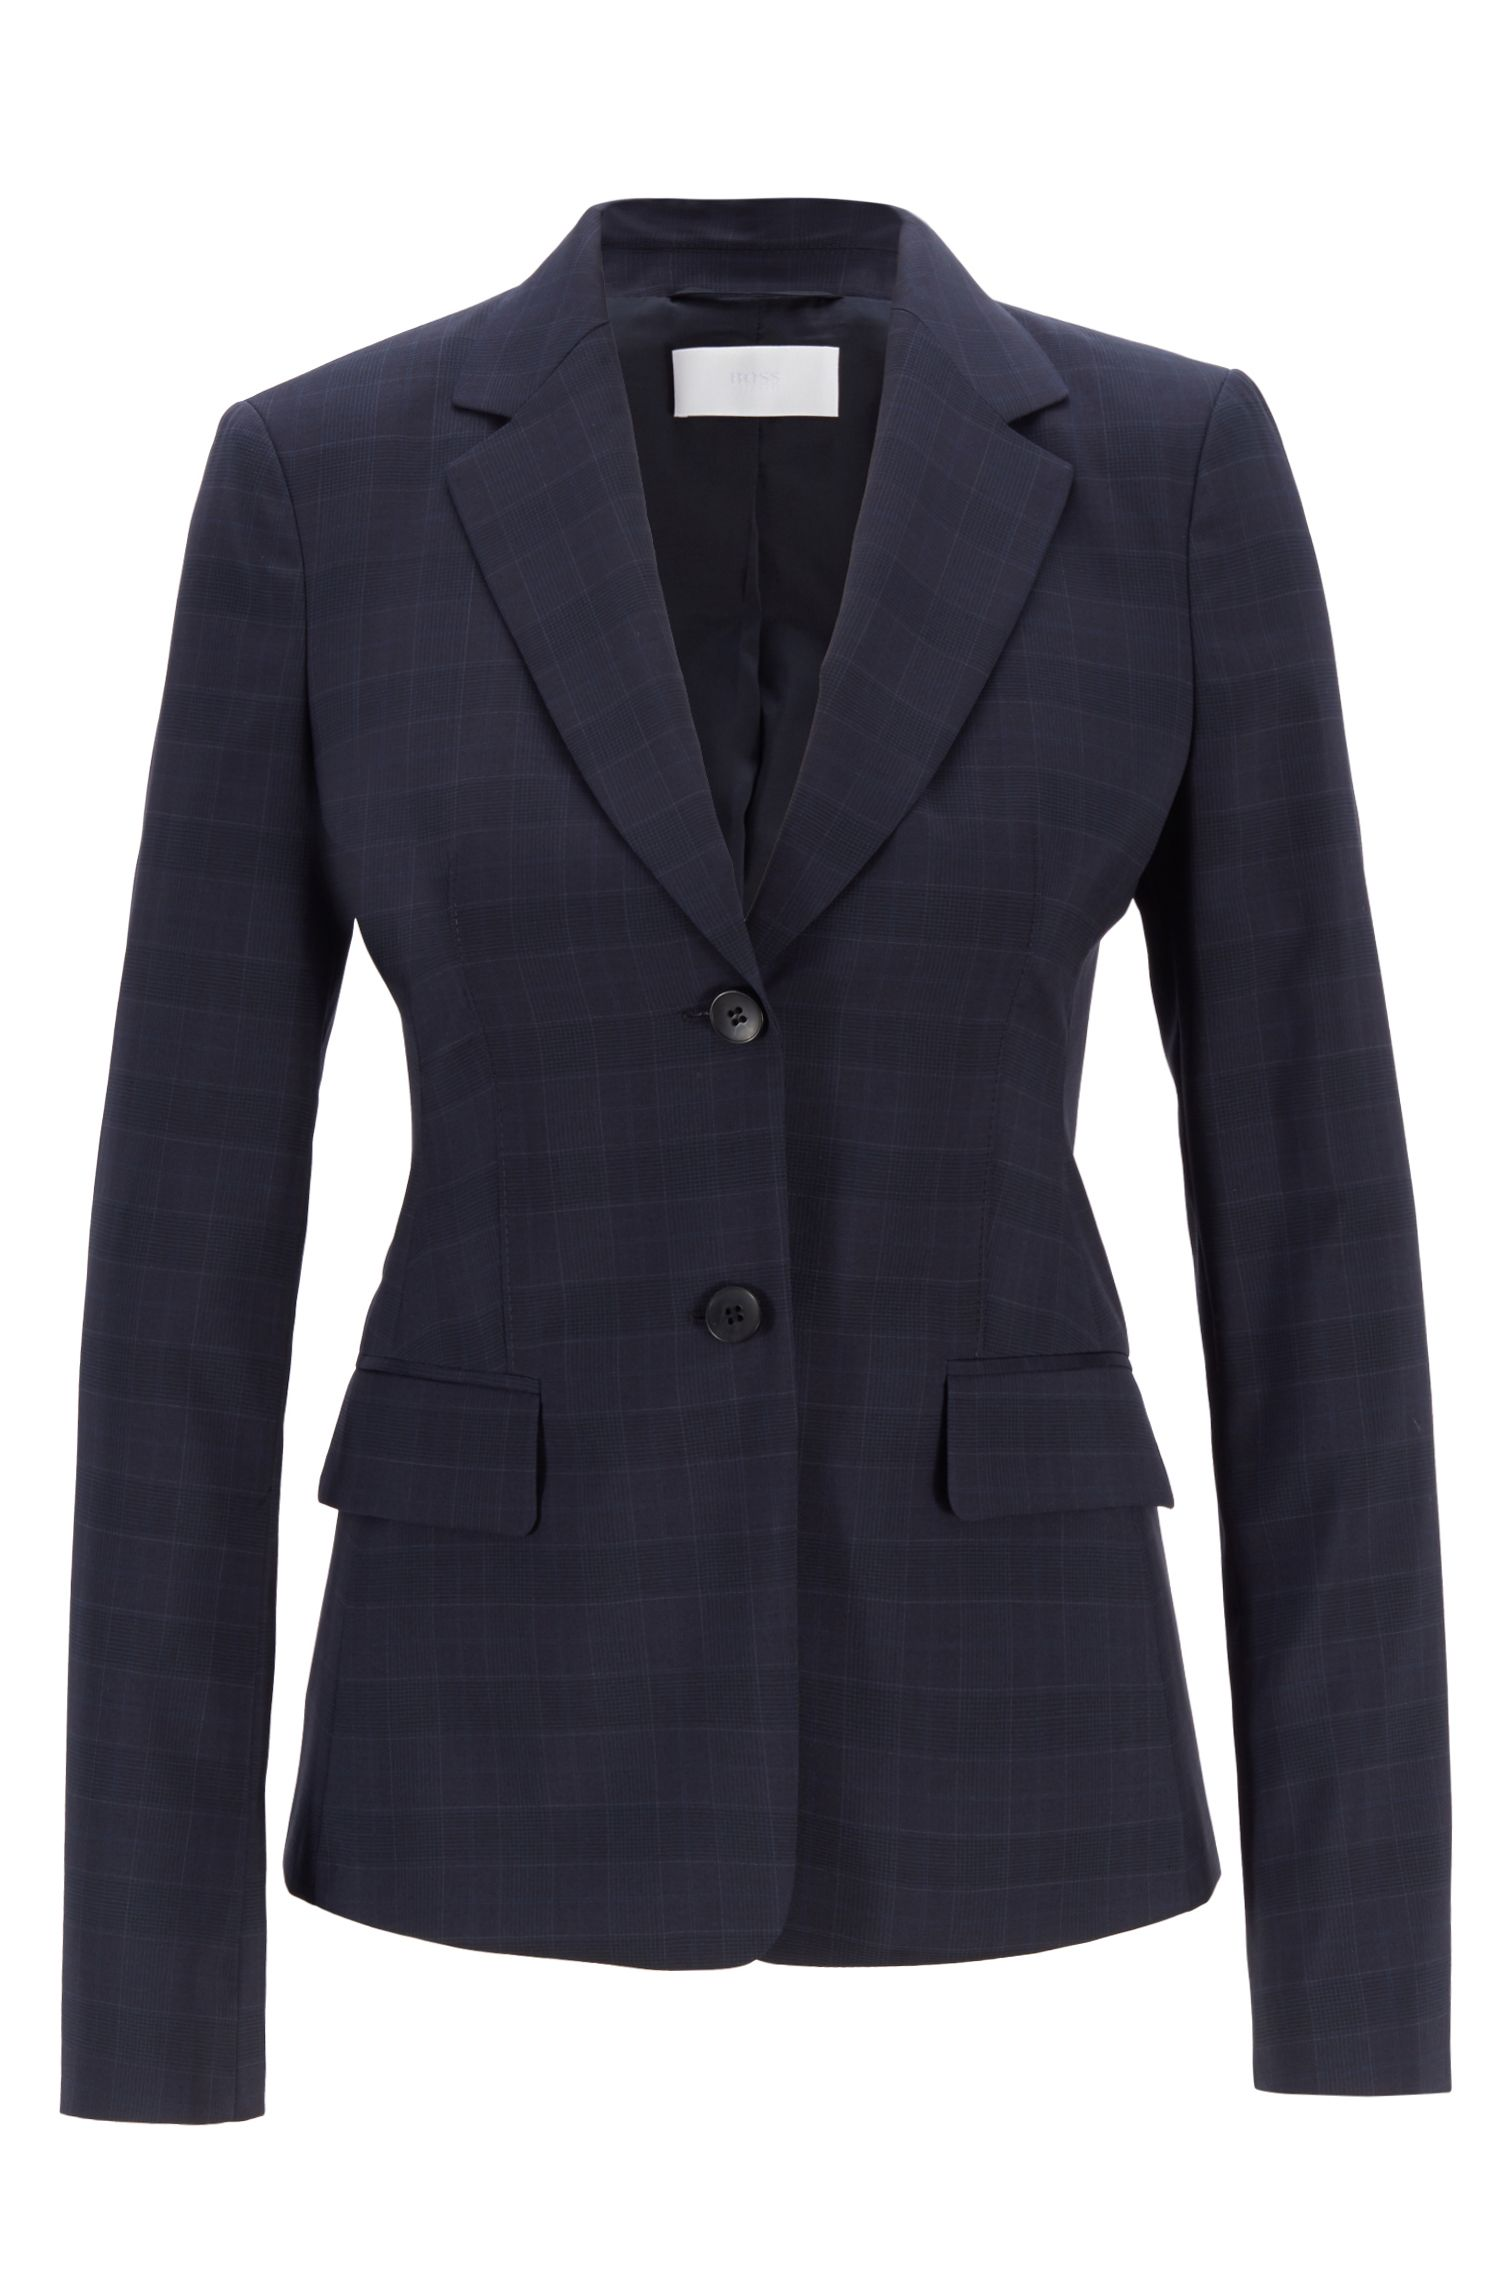 Regular-fit jacket in checked Italian wool, Patterned